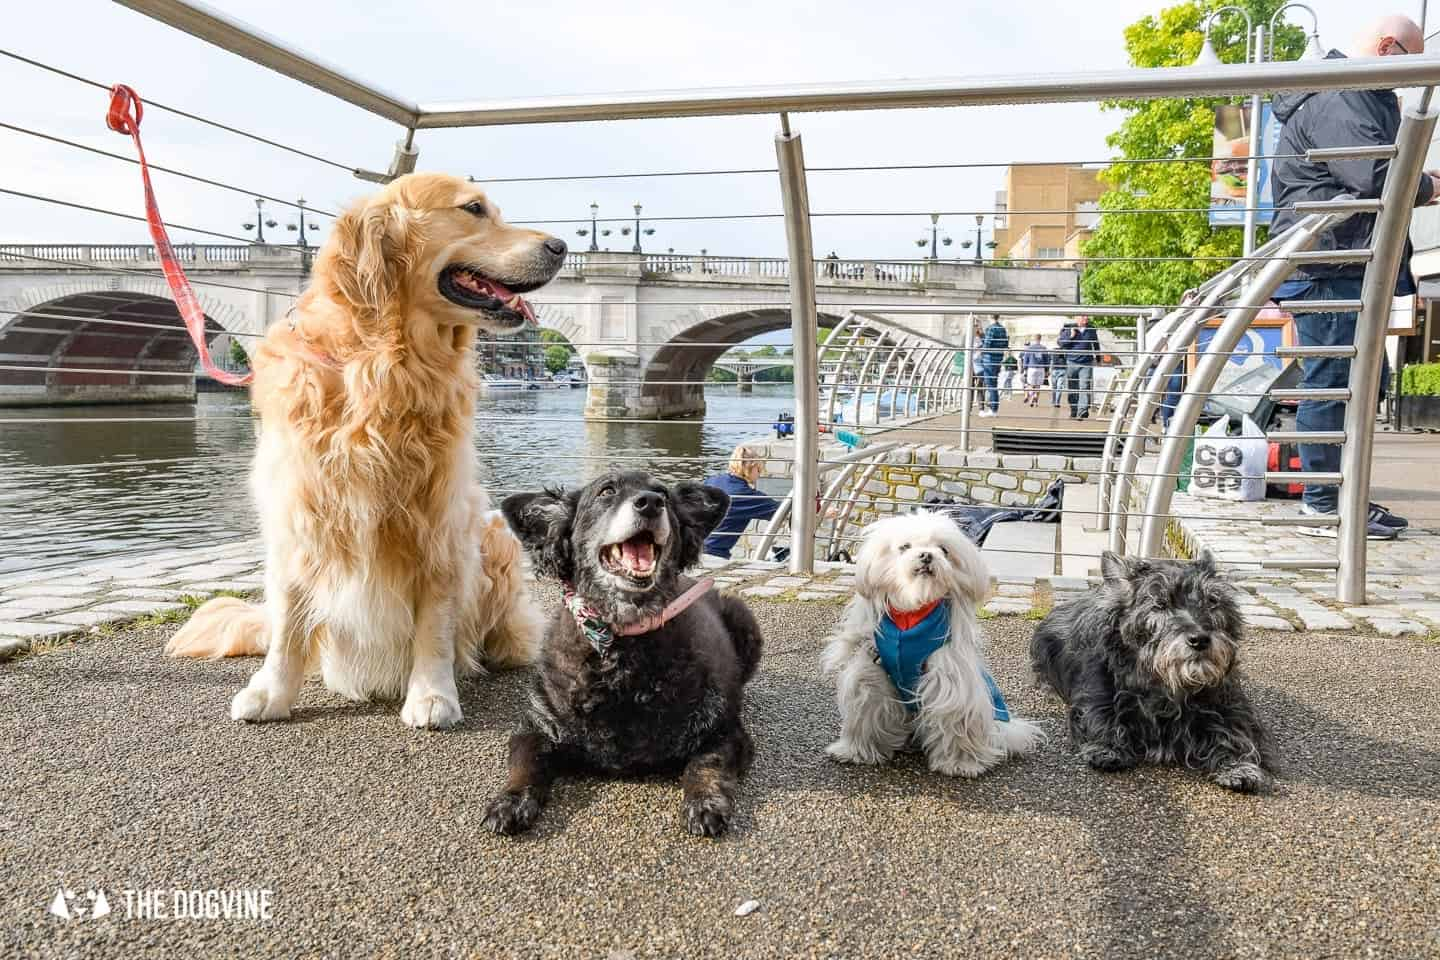 Dog-friendly Go Boat Kingston Upon Thames 31